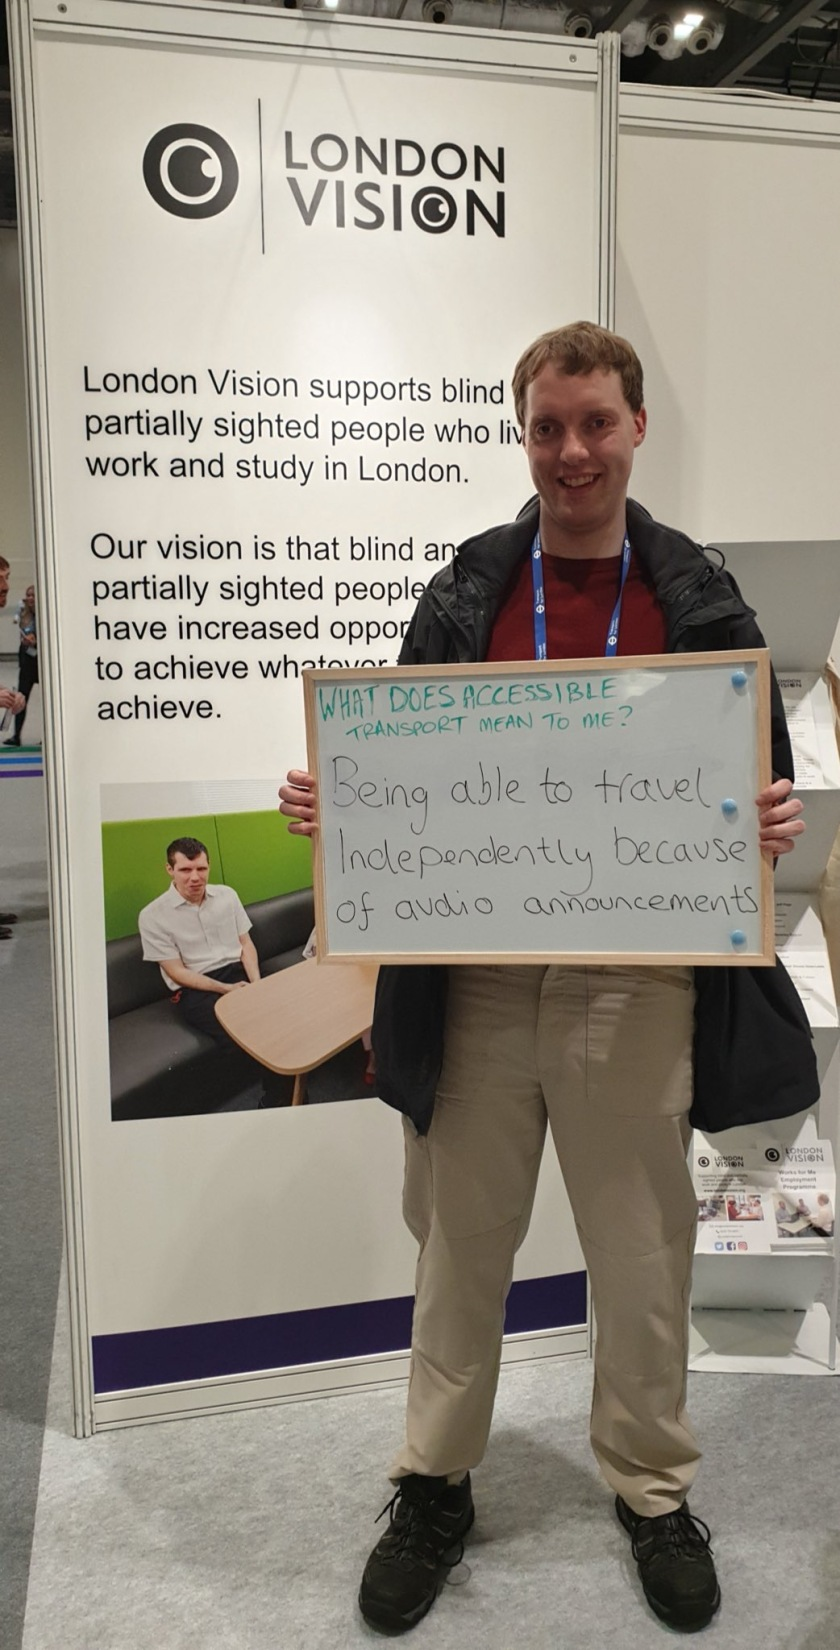 Standing in front of a tall London Vision banner, Glen is smiling and holding up a white board with handwritten text on it that says What does accessible transport mean to me? Being able to travel independently because of audio announcements.